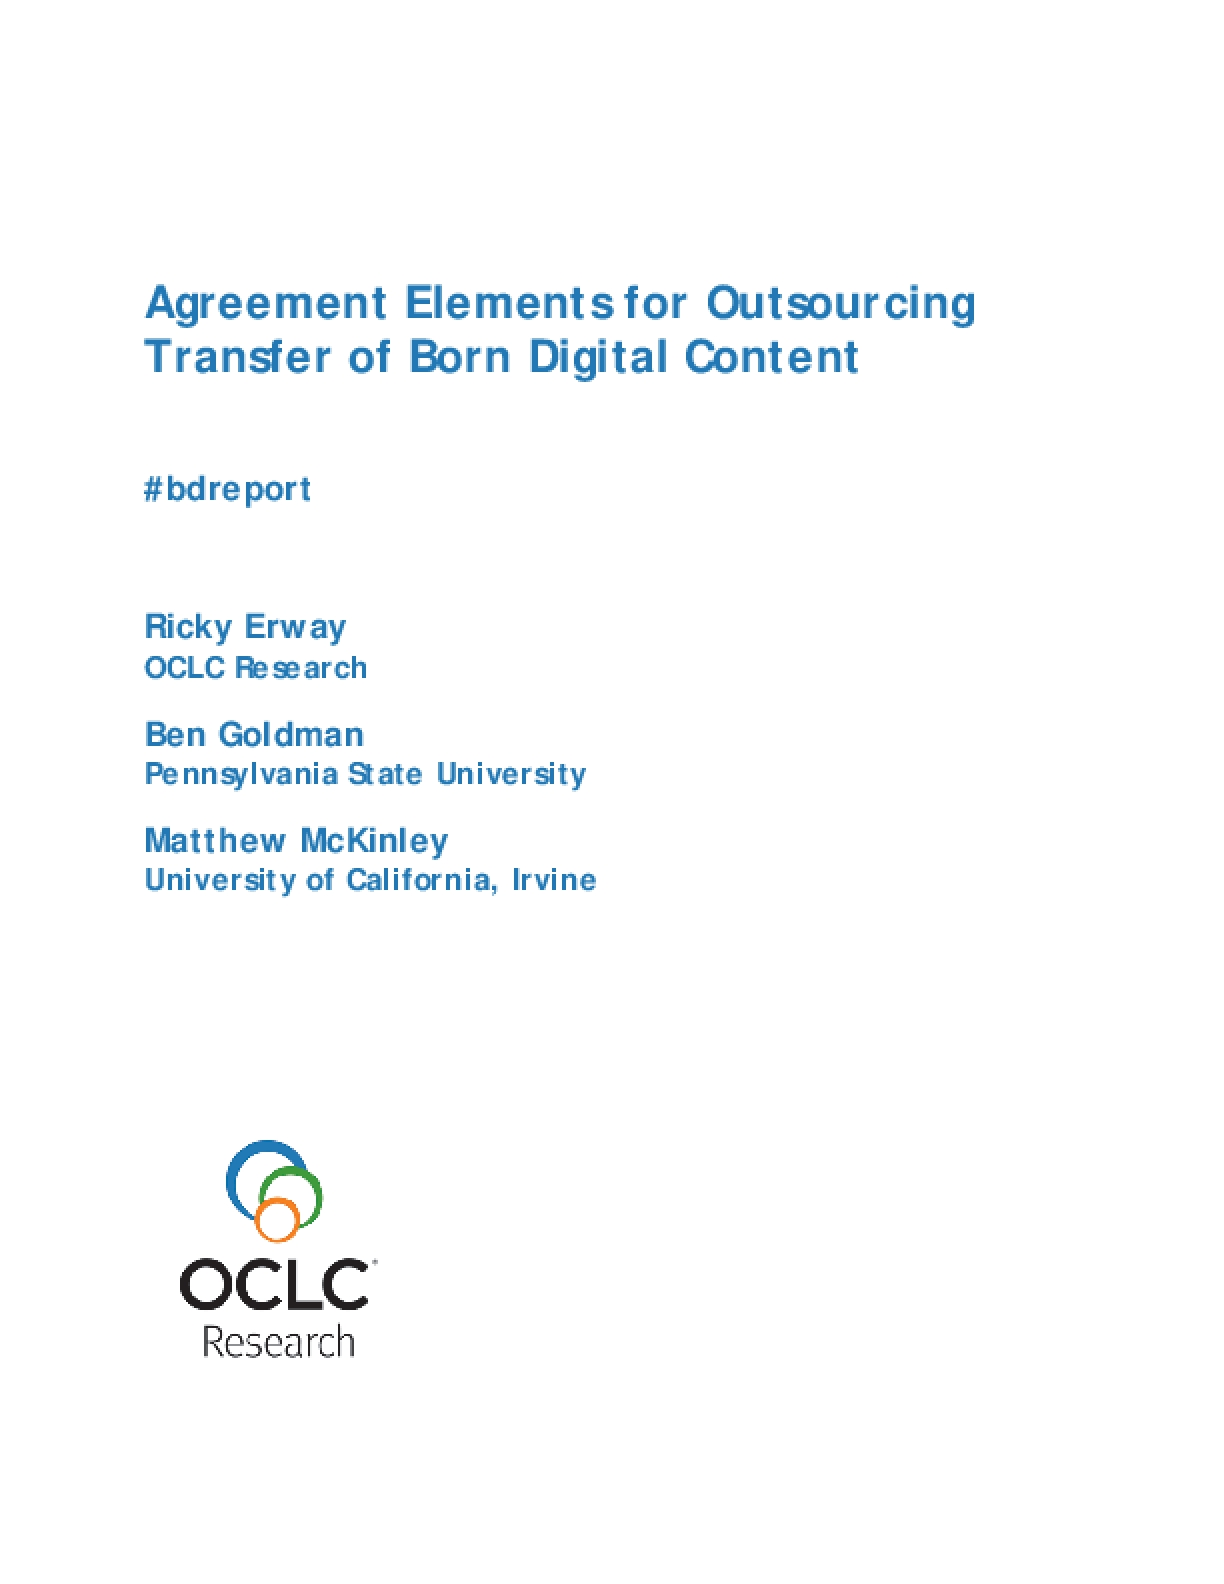 Agreement Elements for Outsourcing Transfer of Born Digital Content